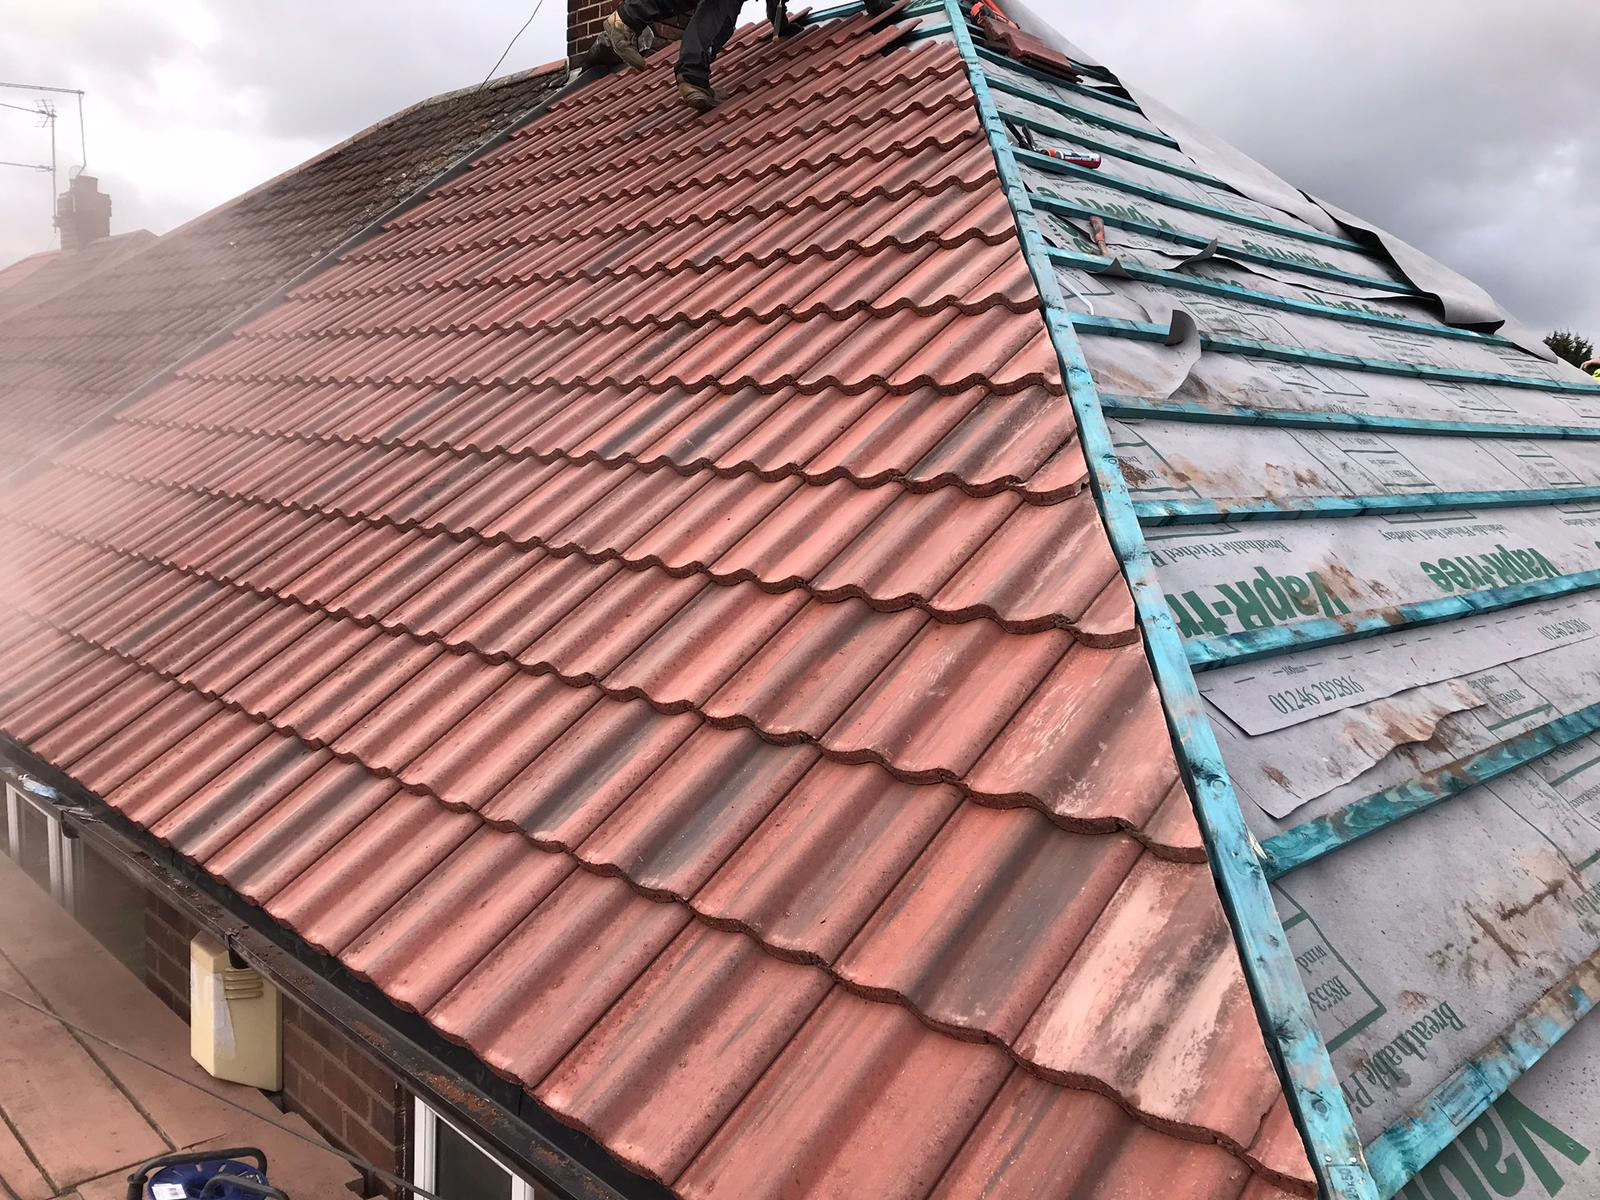 new slate roofing work carried out by the team